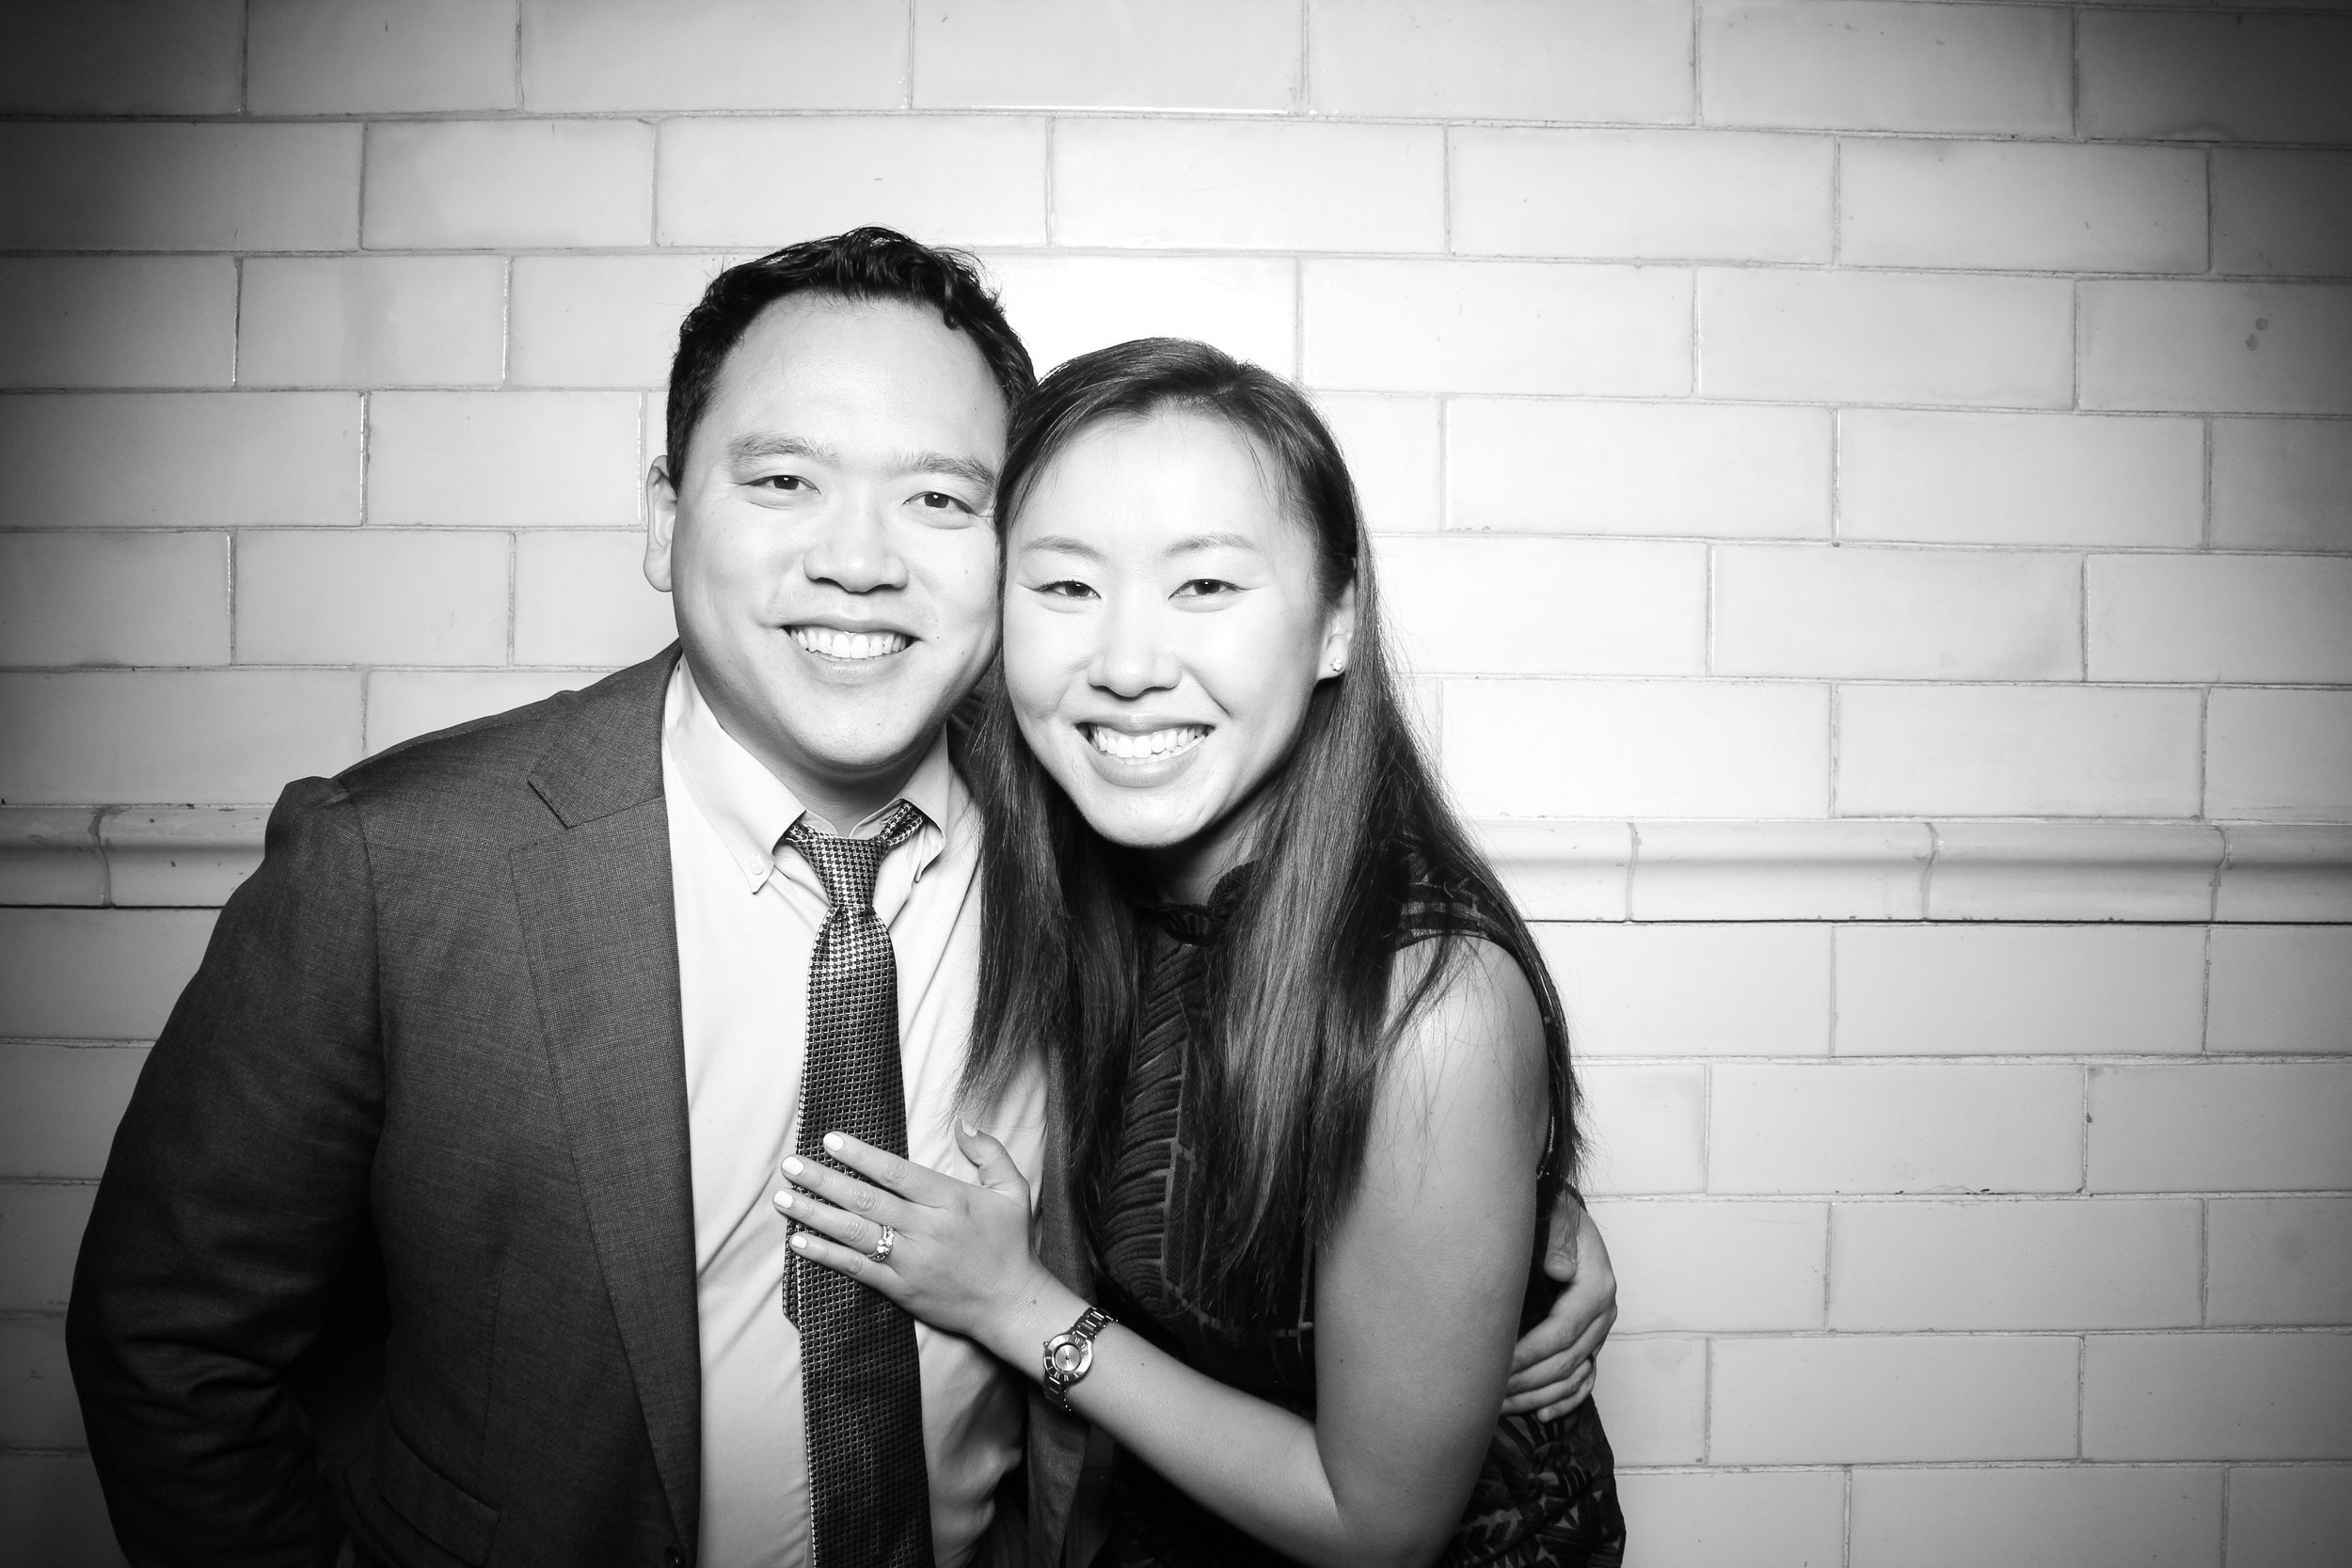 Firehouse_Chicago_Edgewater_Wedding_Reception_Photo_Booth_05.jpg